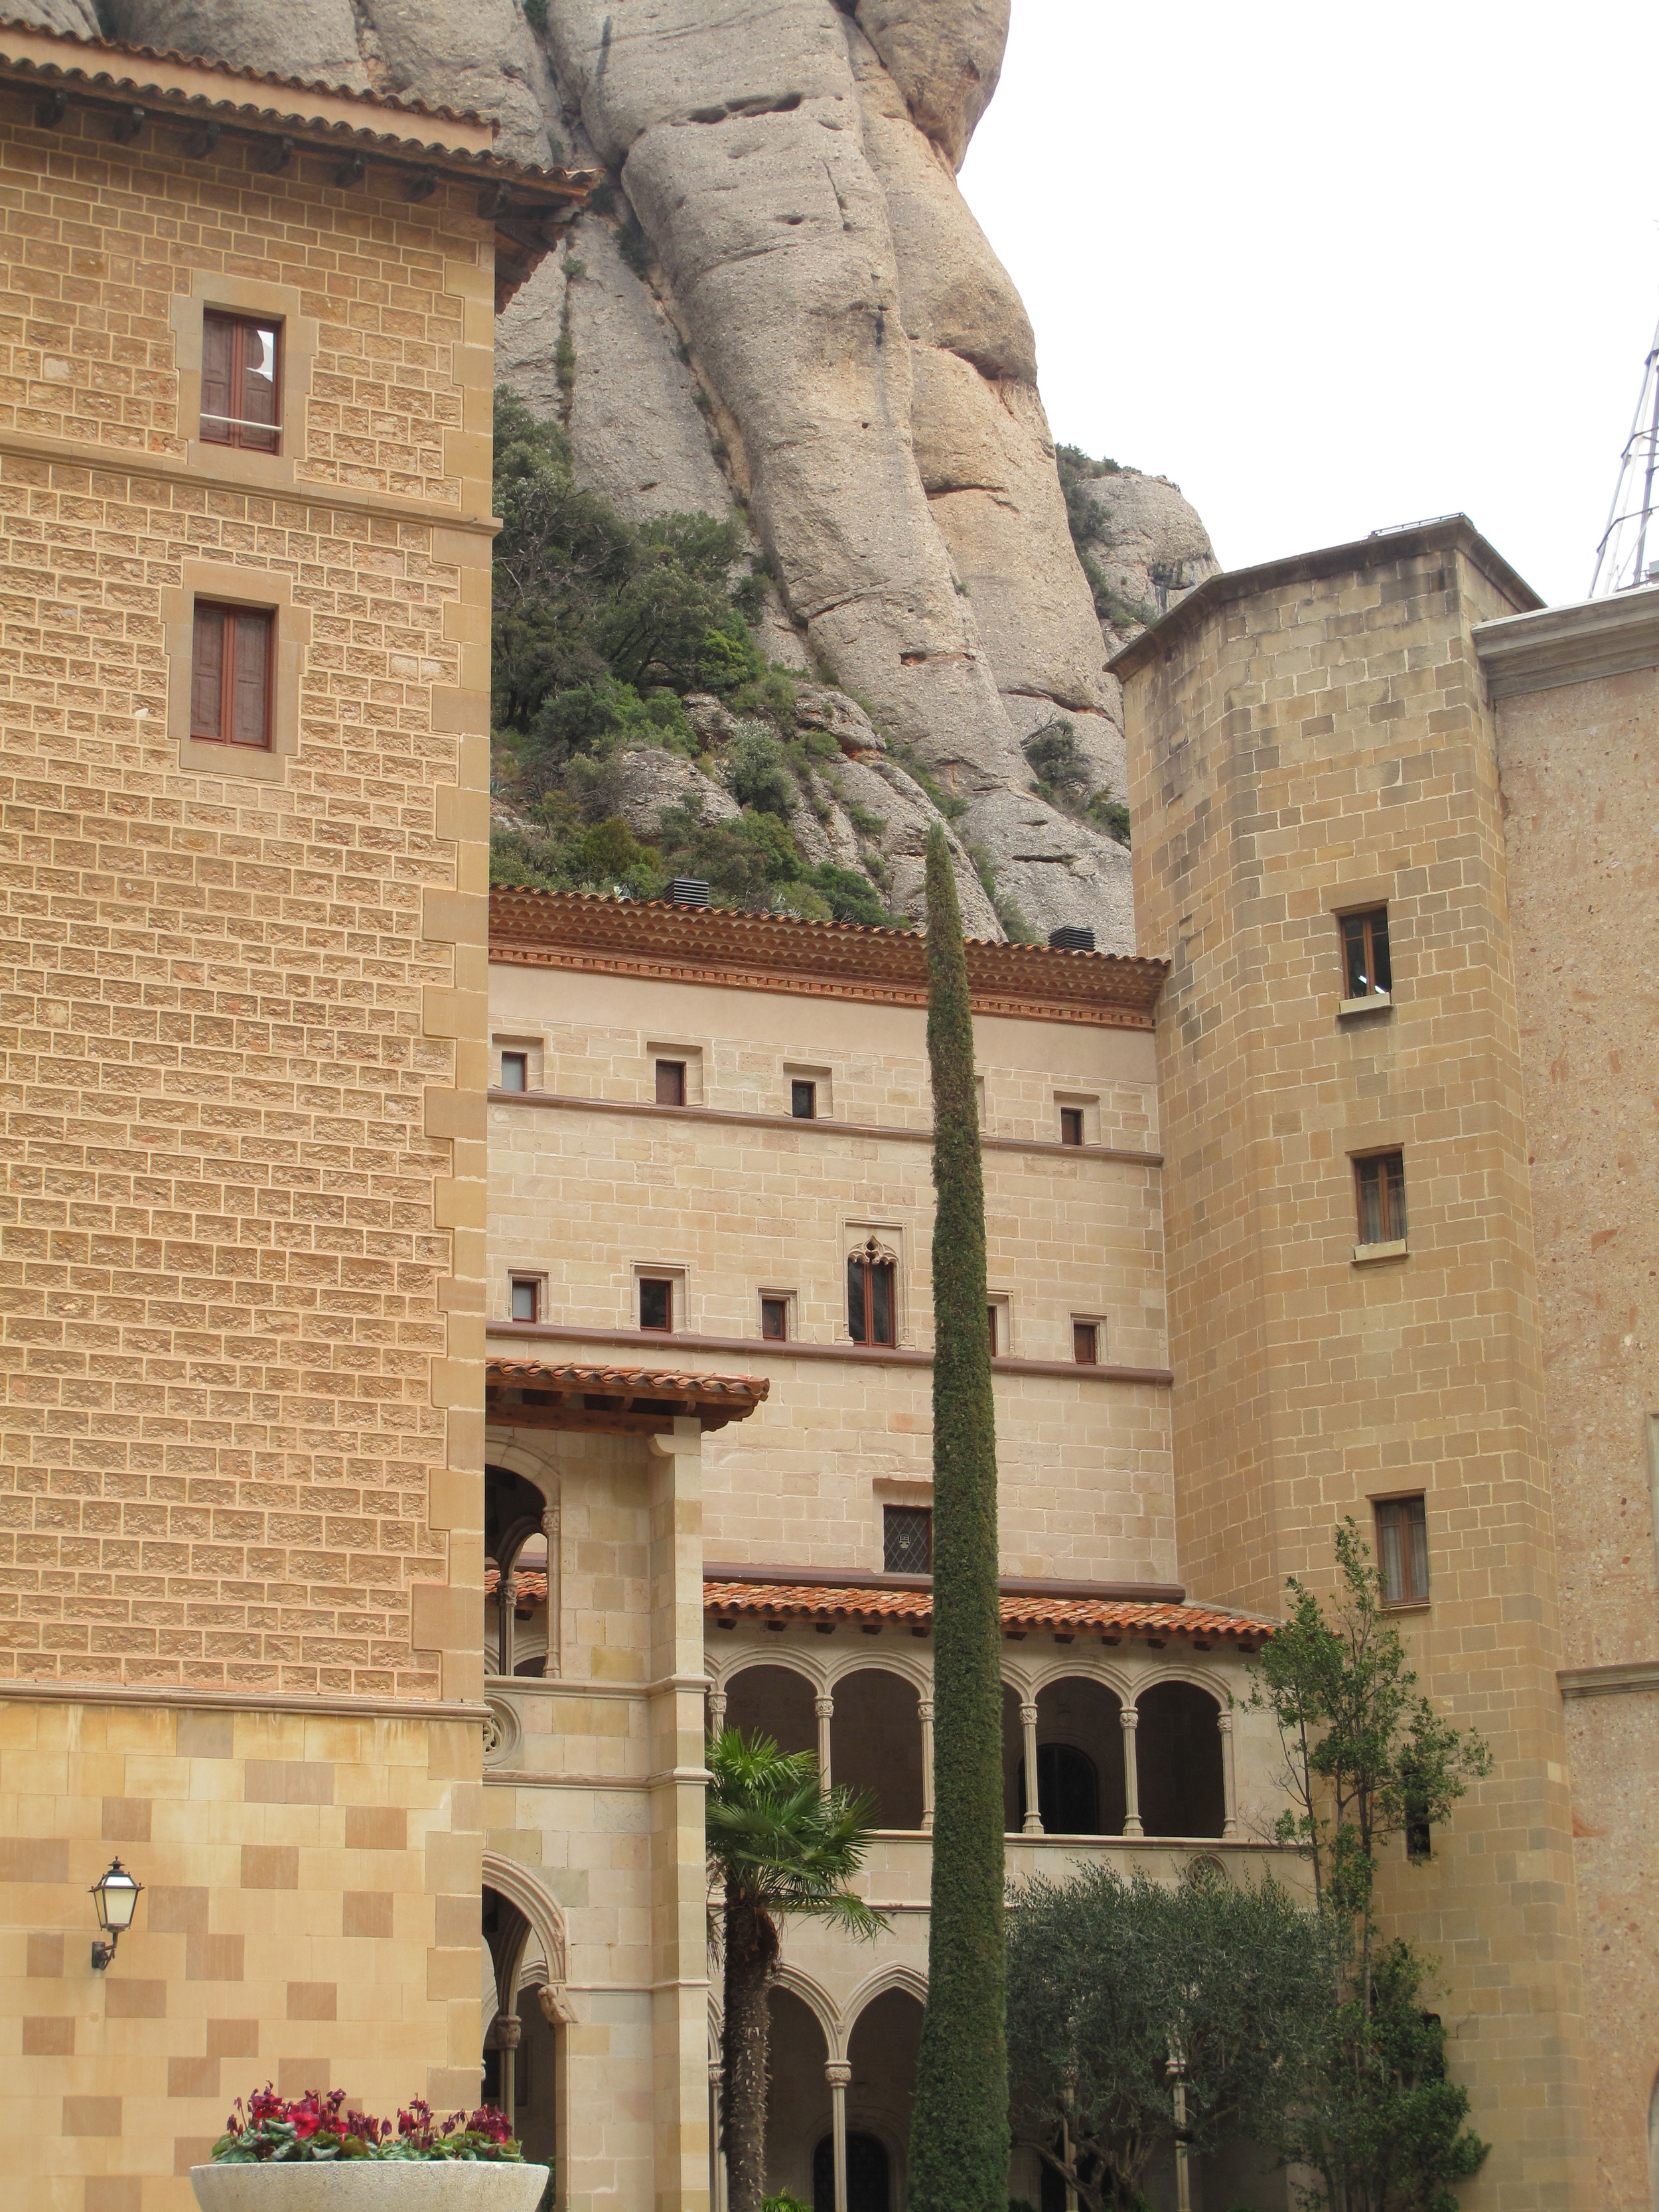 Cream stone buildings and cypress trees in the hills of Montserrat